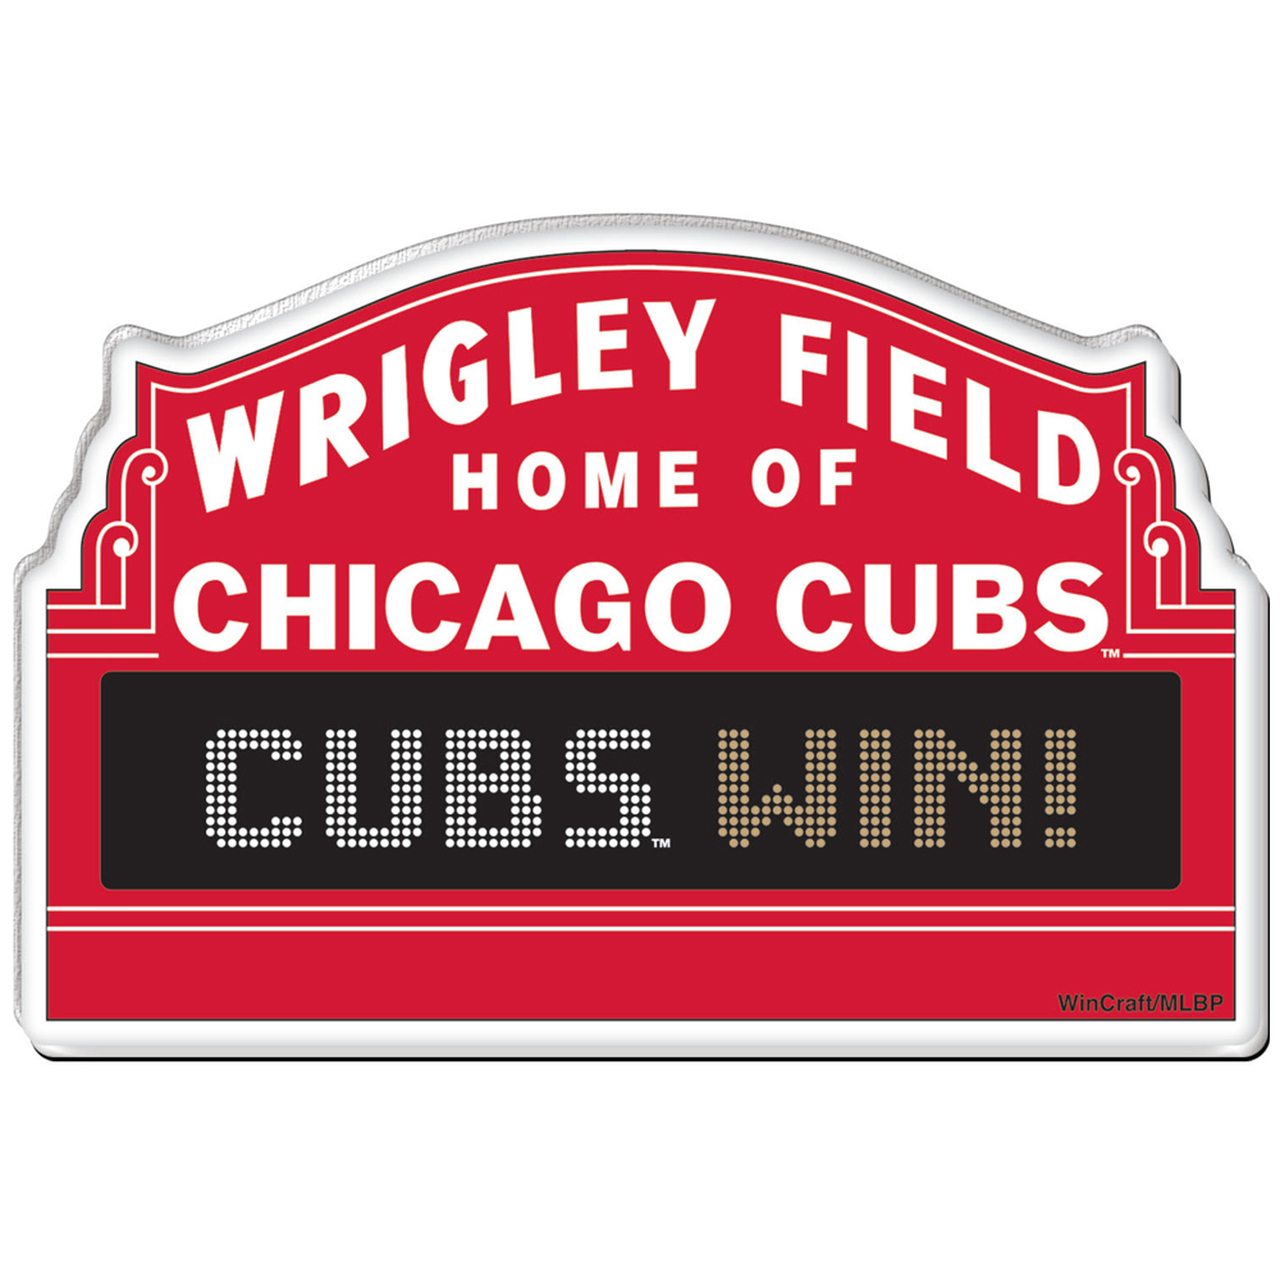 Chicago Cubs Wrigley Field Marquee Premium Acrylic Magnet by WinCraft.